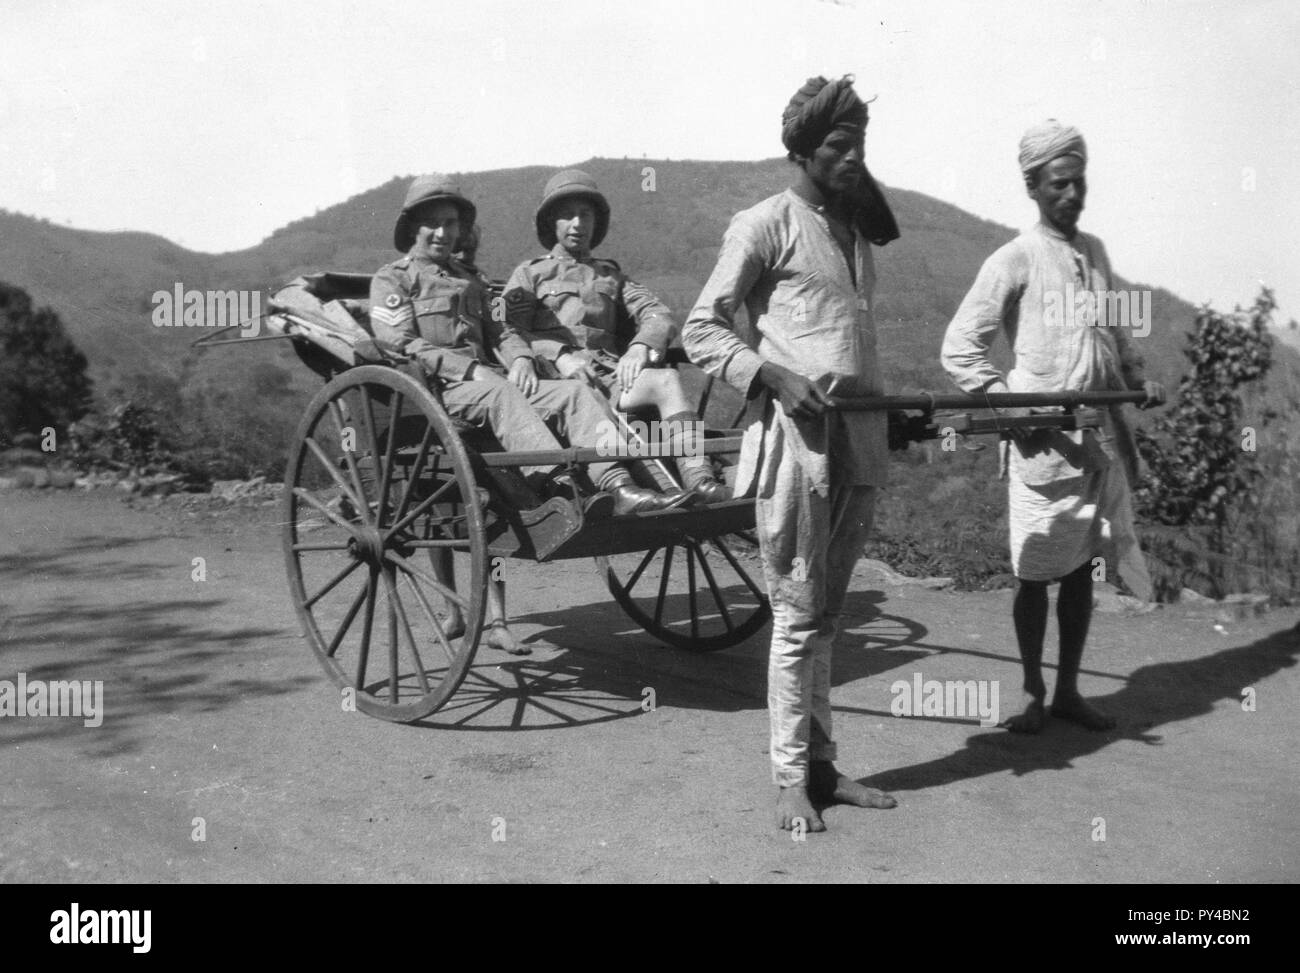 British Army Medical soldiers posing in a rickshaw tended by two Indian locals. India c1943  Photograph by Tony Henshaw - Stock Image